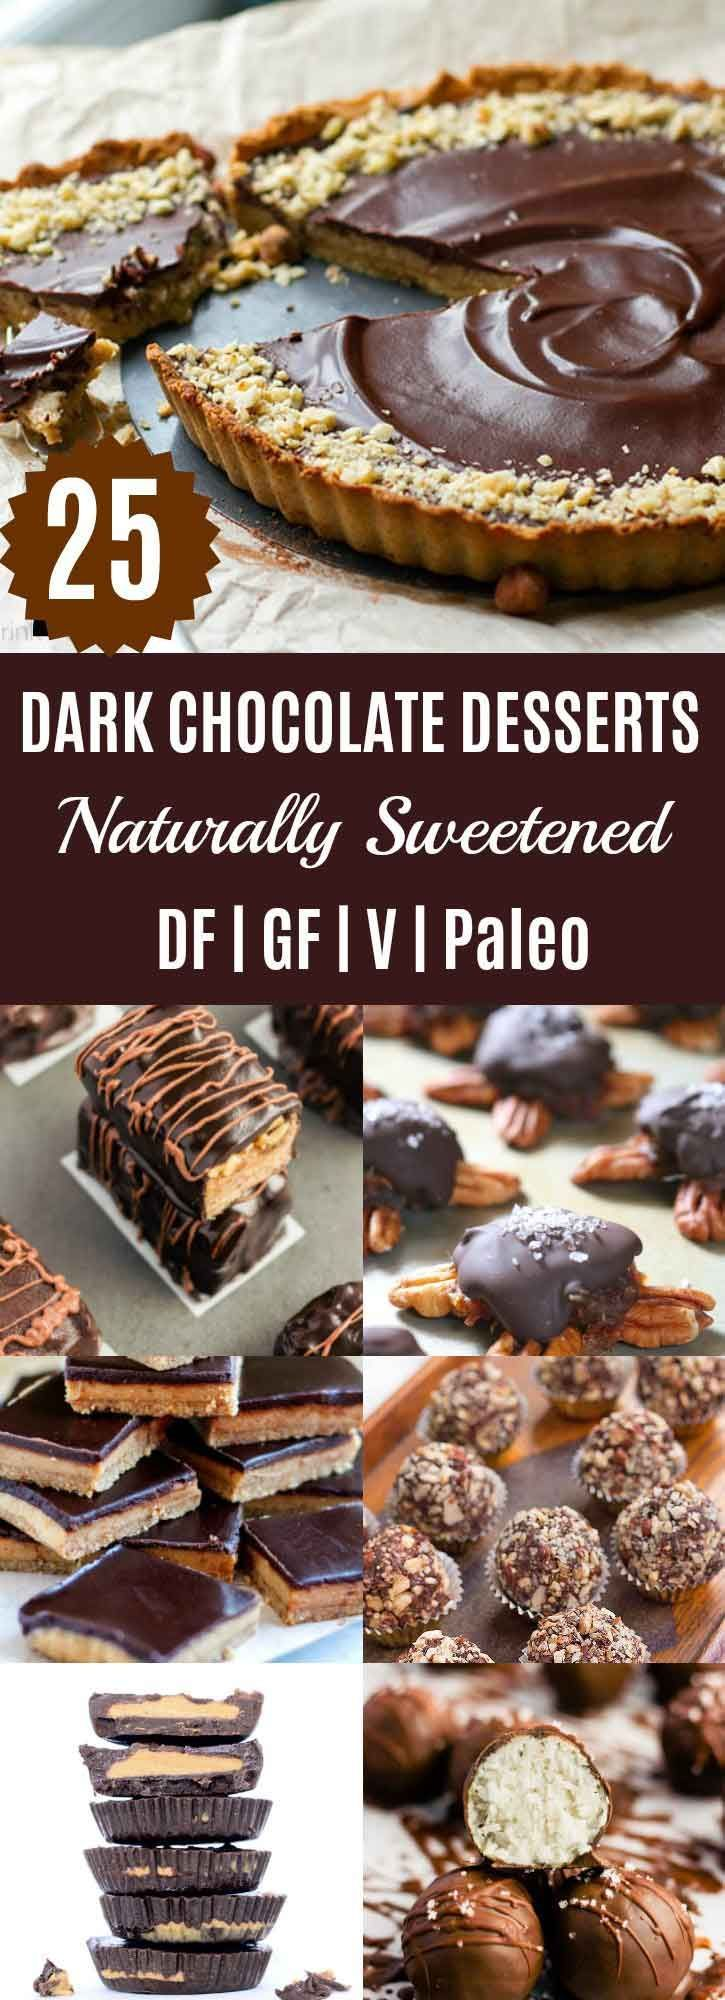 25 Dark Chocolate Desserts {Naturally Sweetened} | Looking for something chocolatey this Christmas season? Check out these 25 Chocolate Desserts that are made using only natural sweeteners such as dates, honey, maple syrup, & coconut sugar. | thenourishedfamily.com